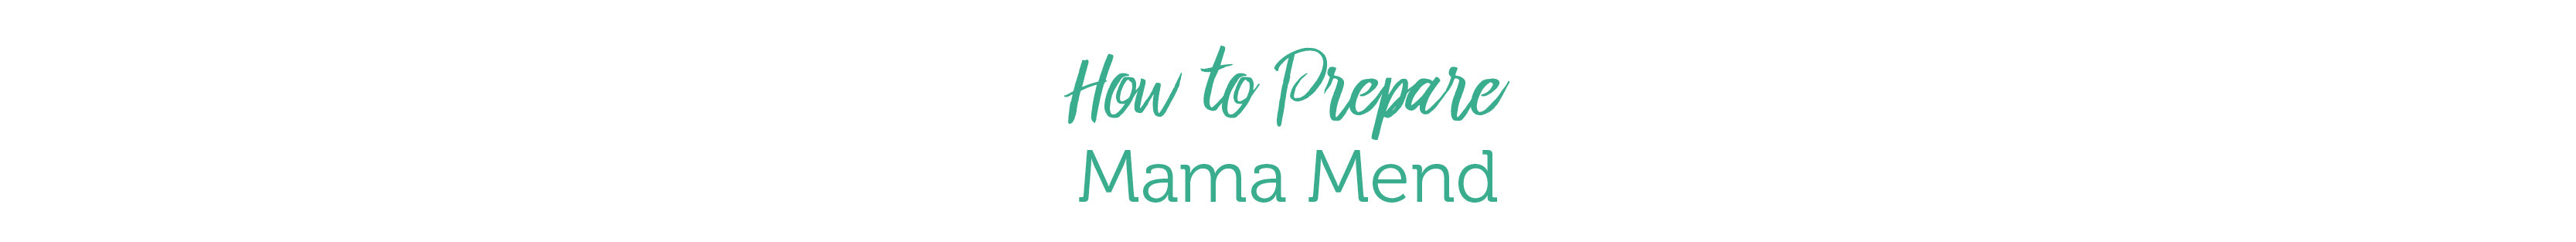 How To Prepare Mama Mend